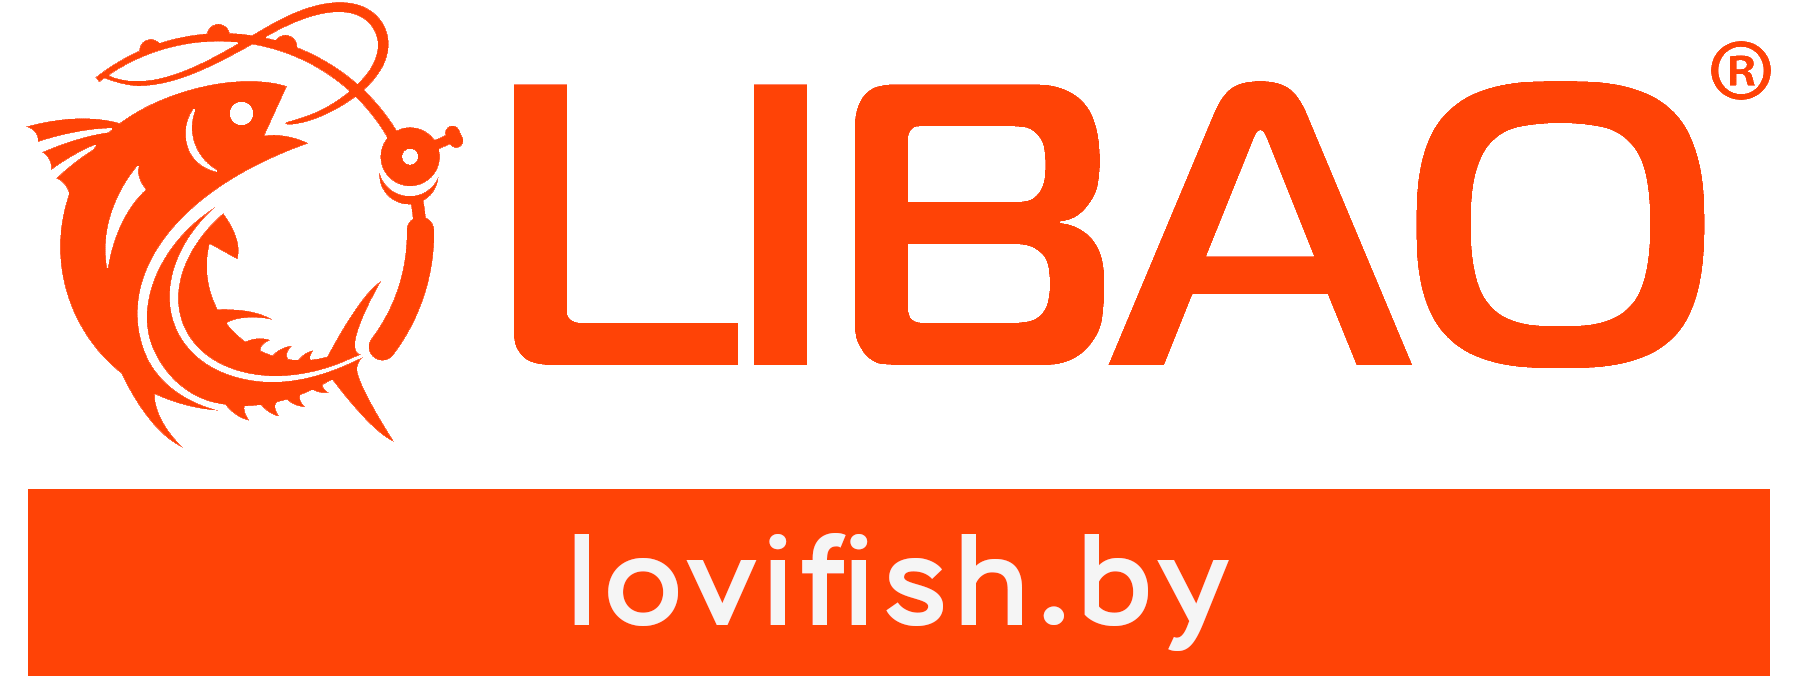 lovifish.by